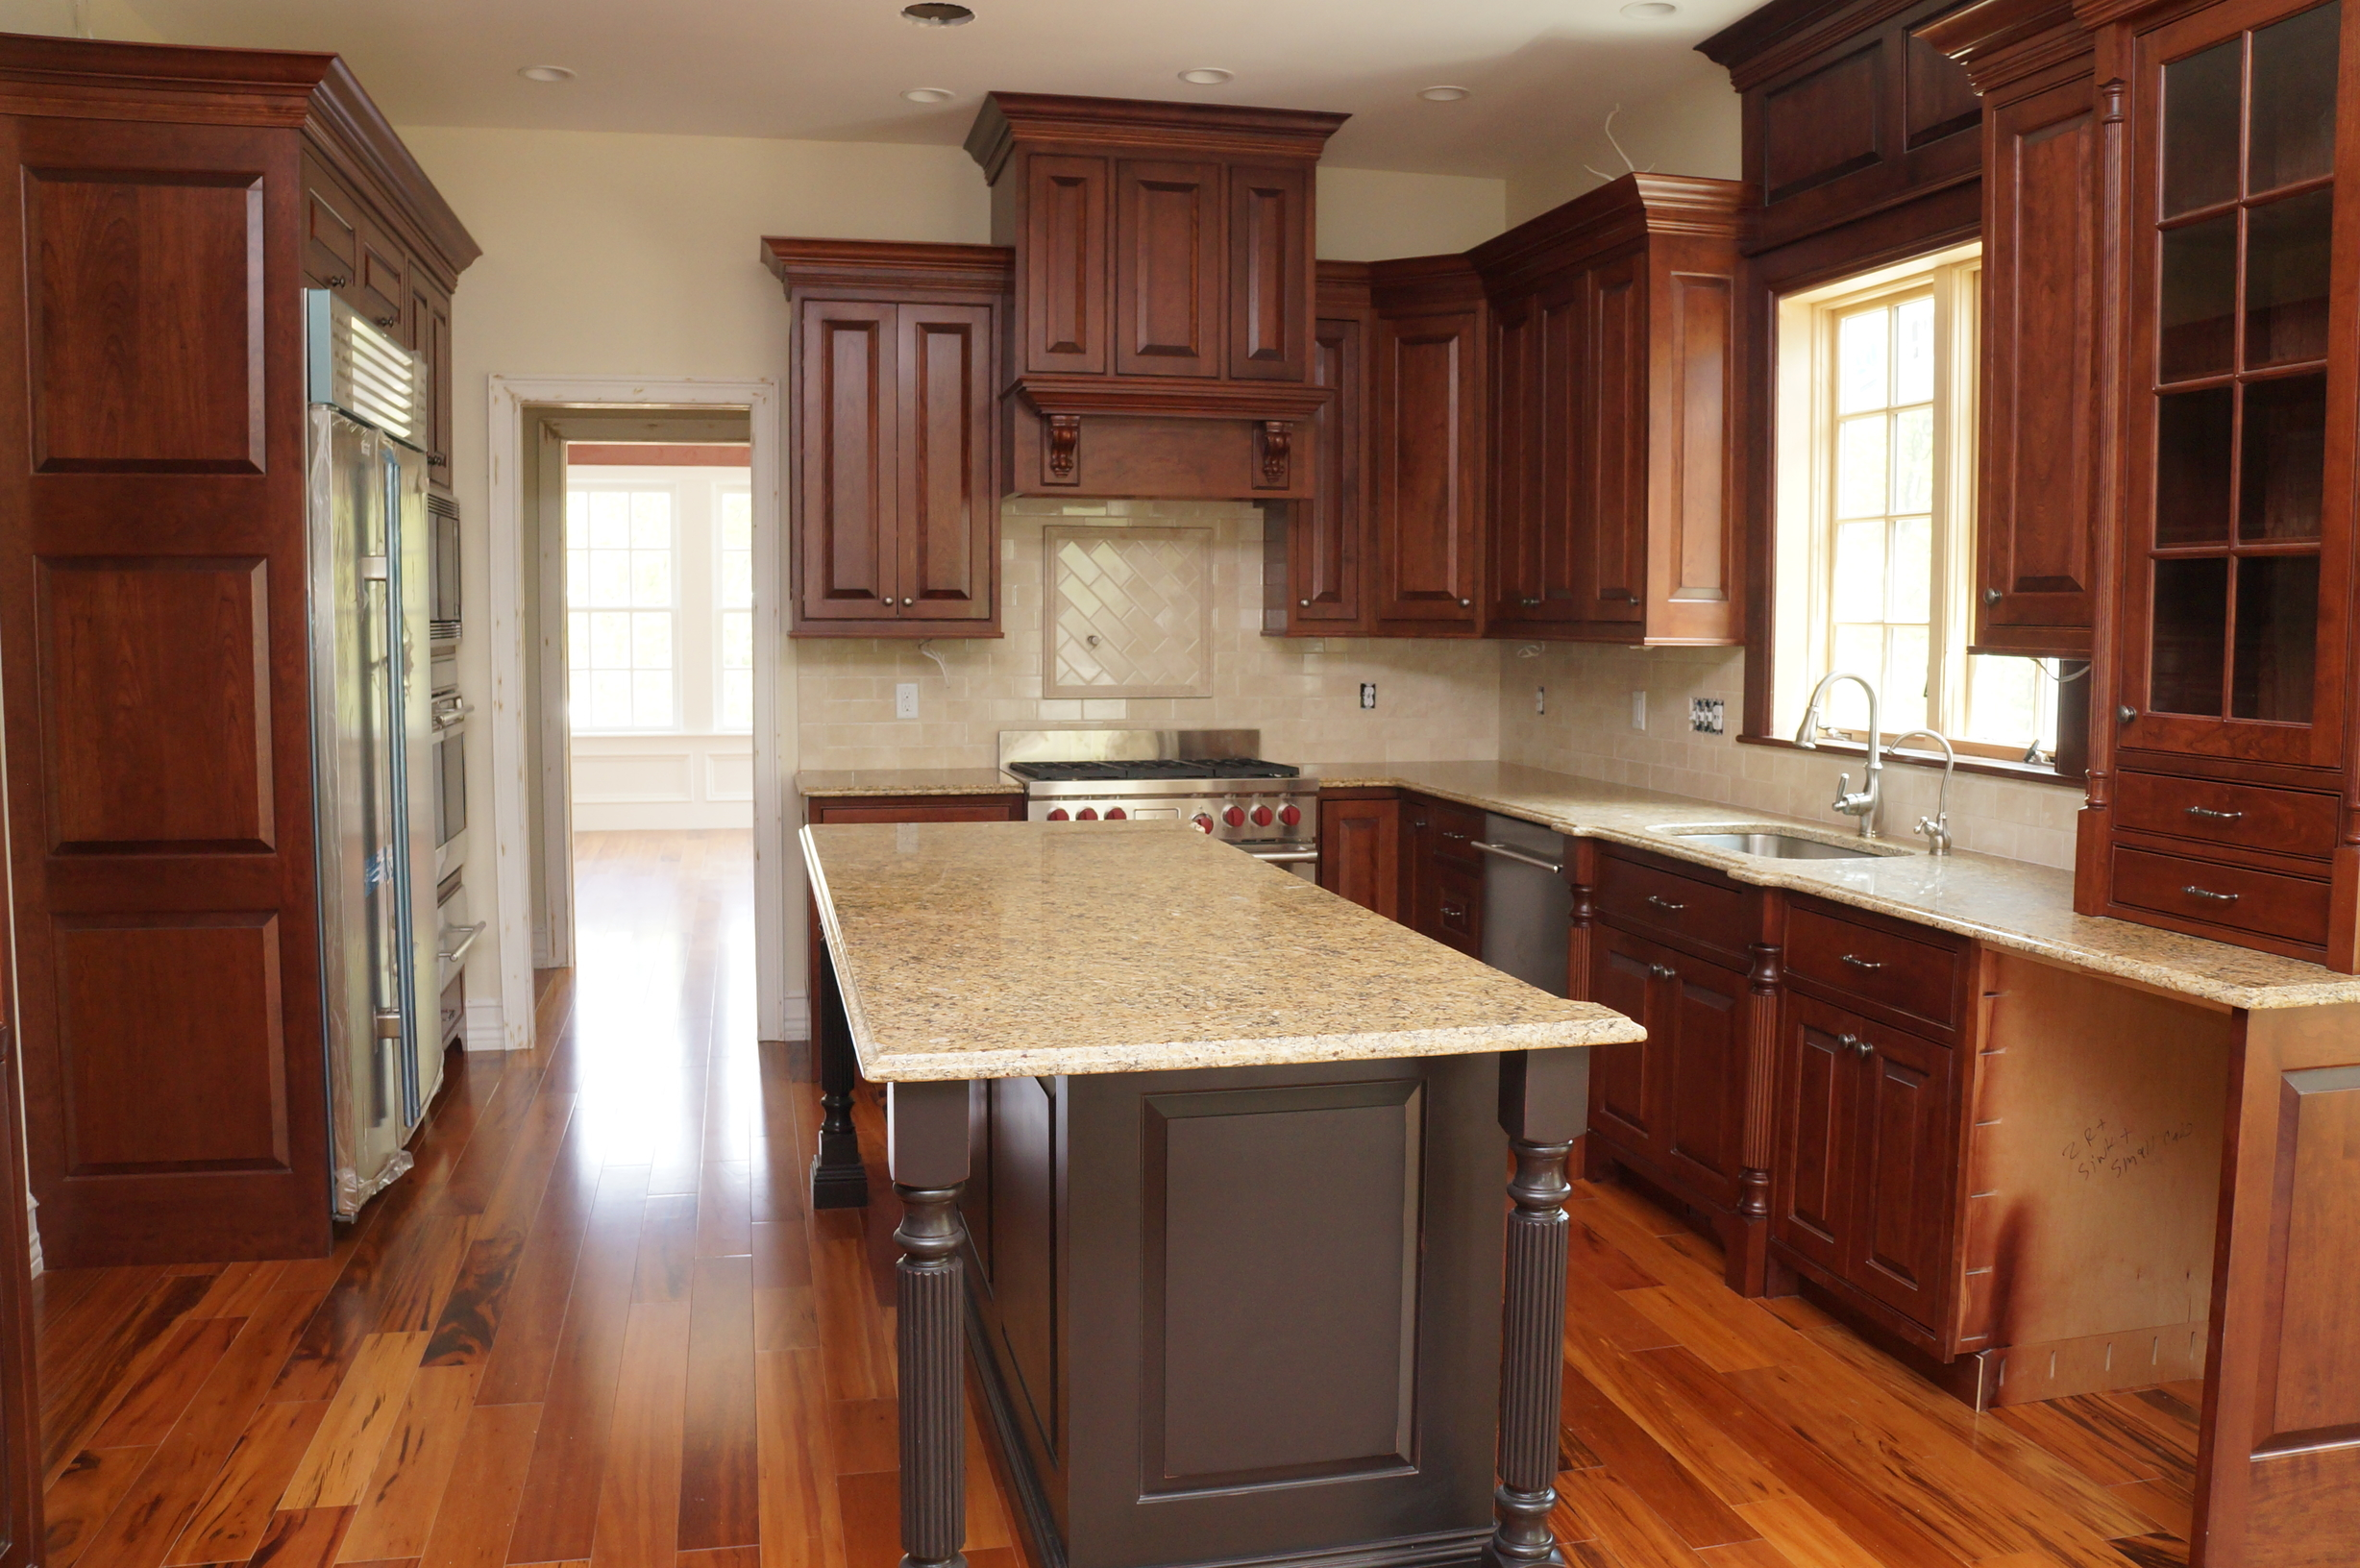 Cherry Kitchen layout and design Bolton Massachusetts